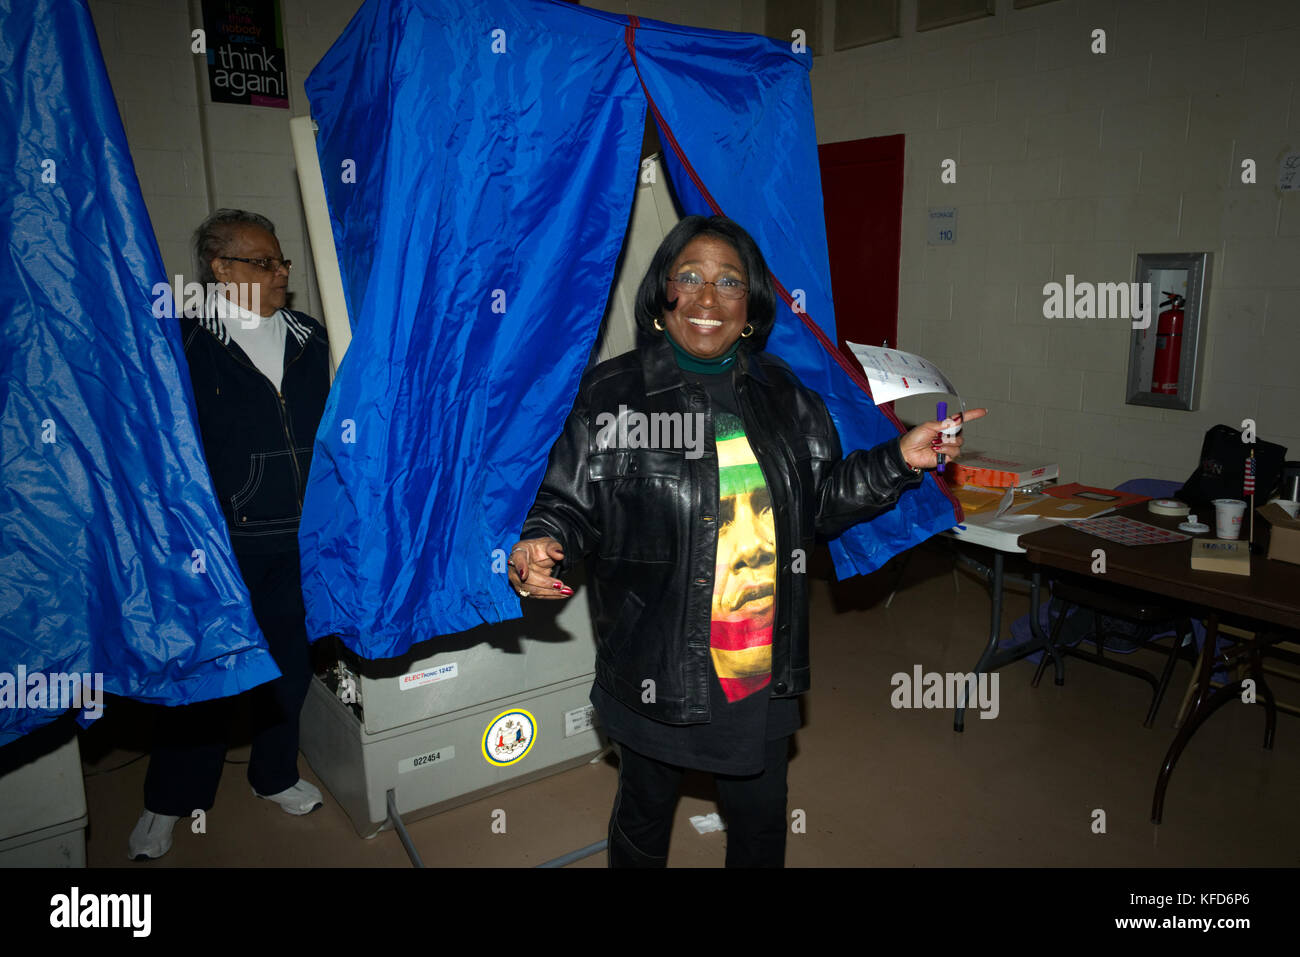 Voters emerge from behind the privacy curtain after casting the ballot inside an electronic voting machine, at a - Stock Image